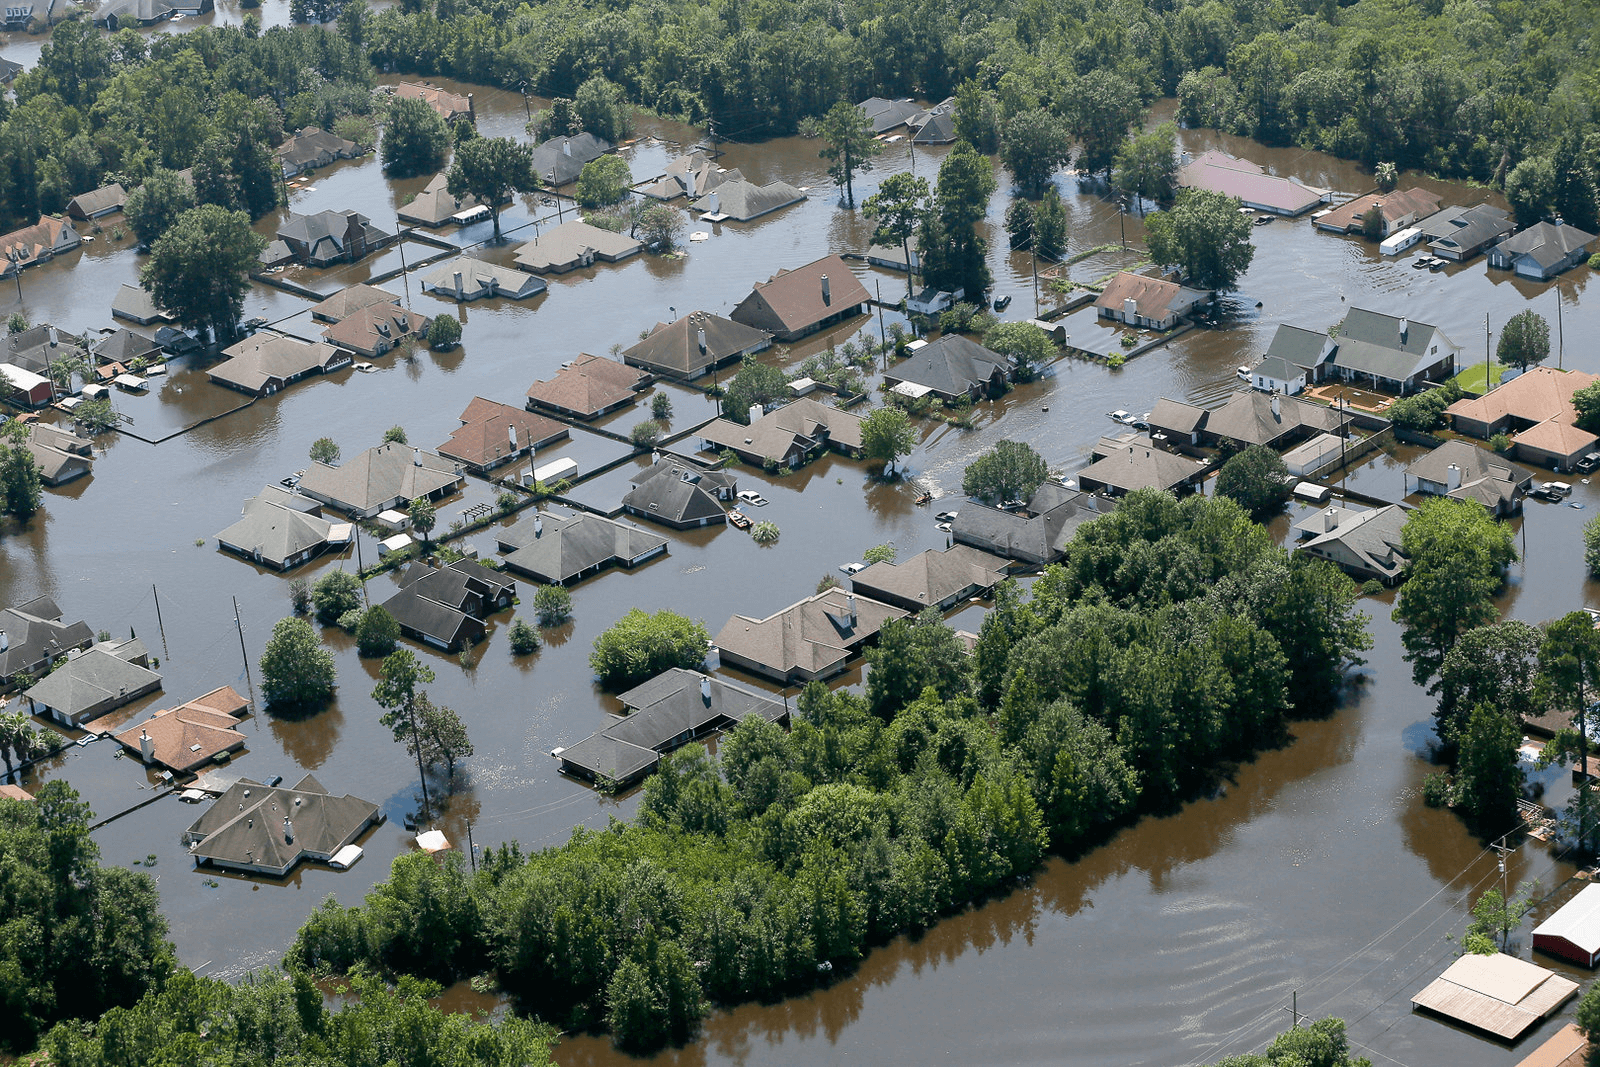 Ariel view of flooded homes due to Hurricane Harvey in Houston, Texas